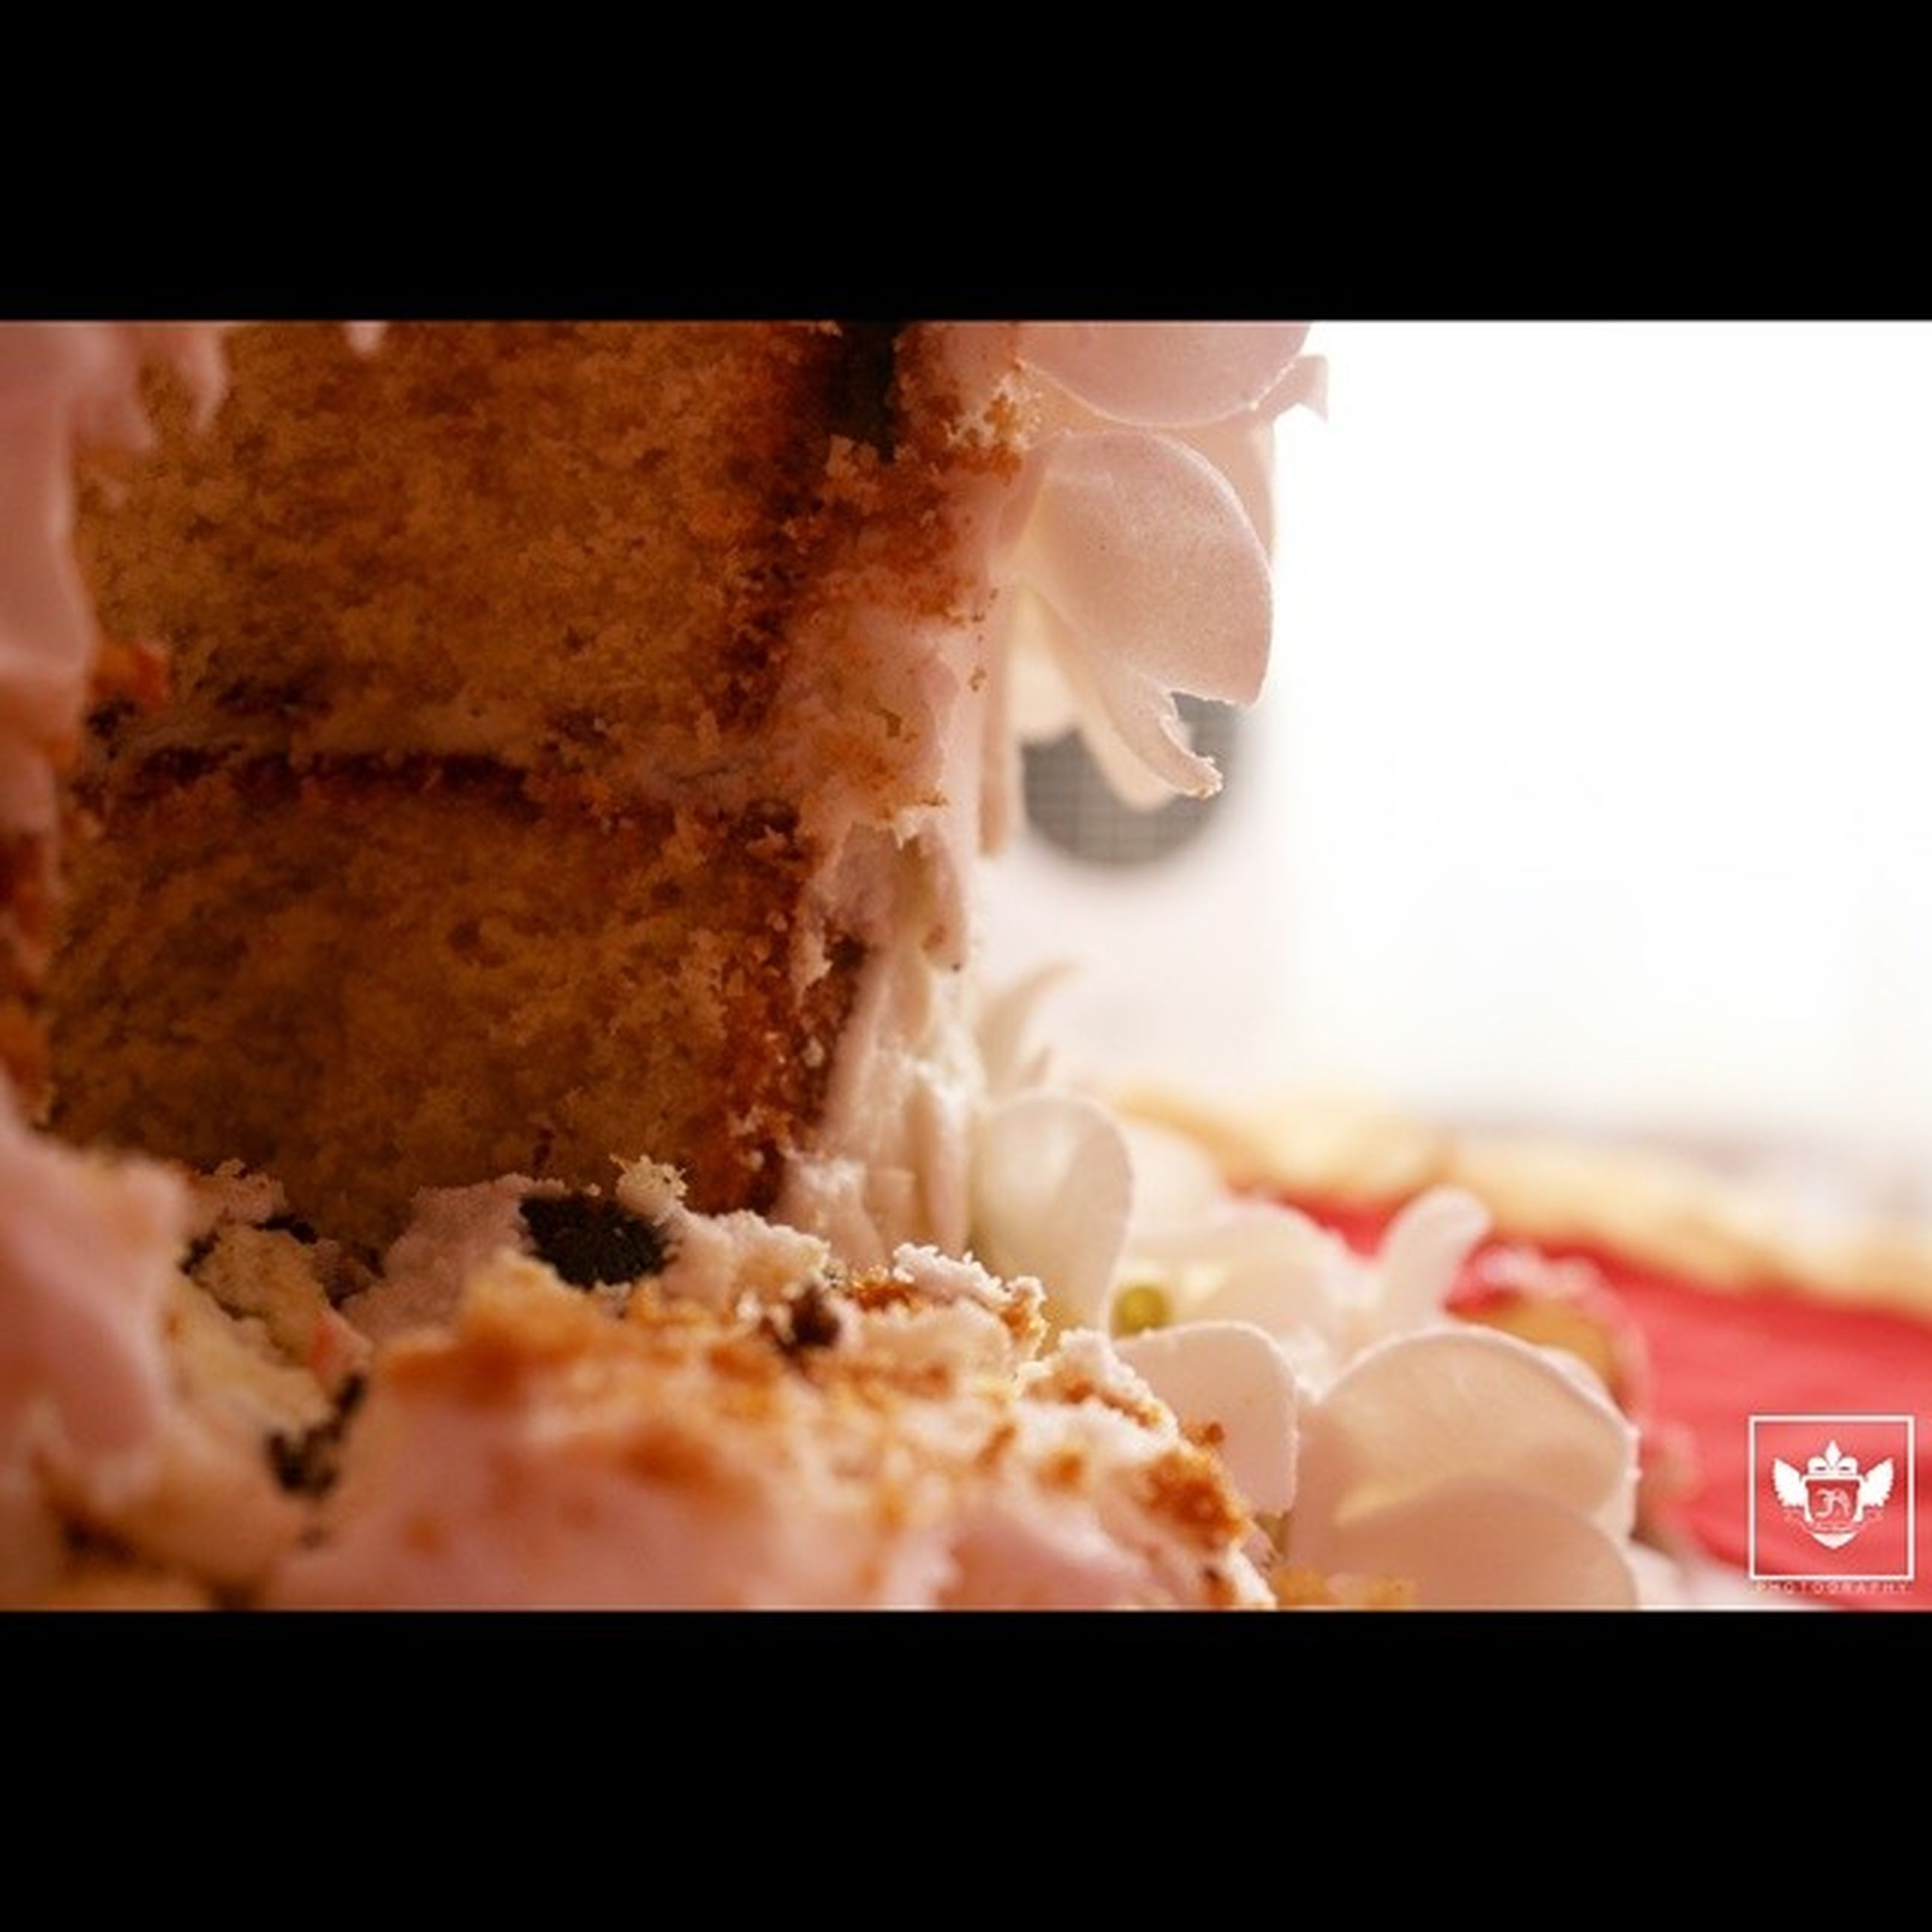 transfer print, food and drink, indoors, auto post production filter, close-up, freshness, food, sweet food, person, selective focus, focus on foreground, dessert, unhealthy eating, part of, indulgence, holding, temptation